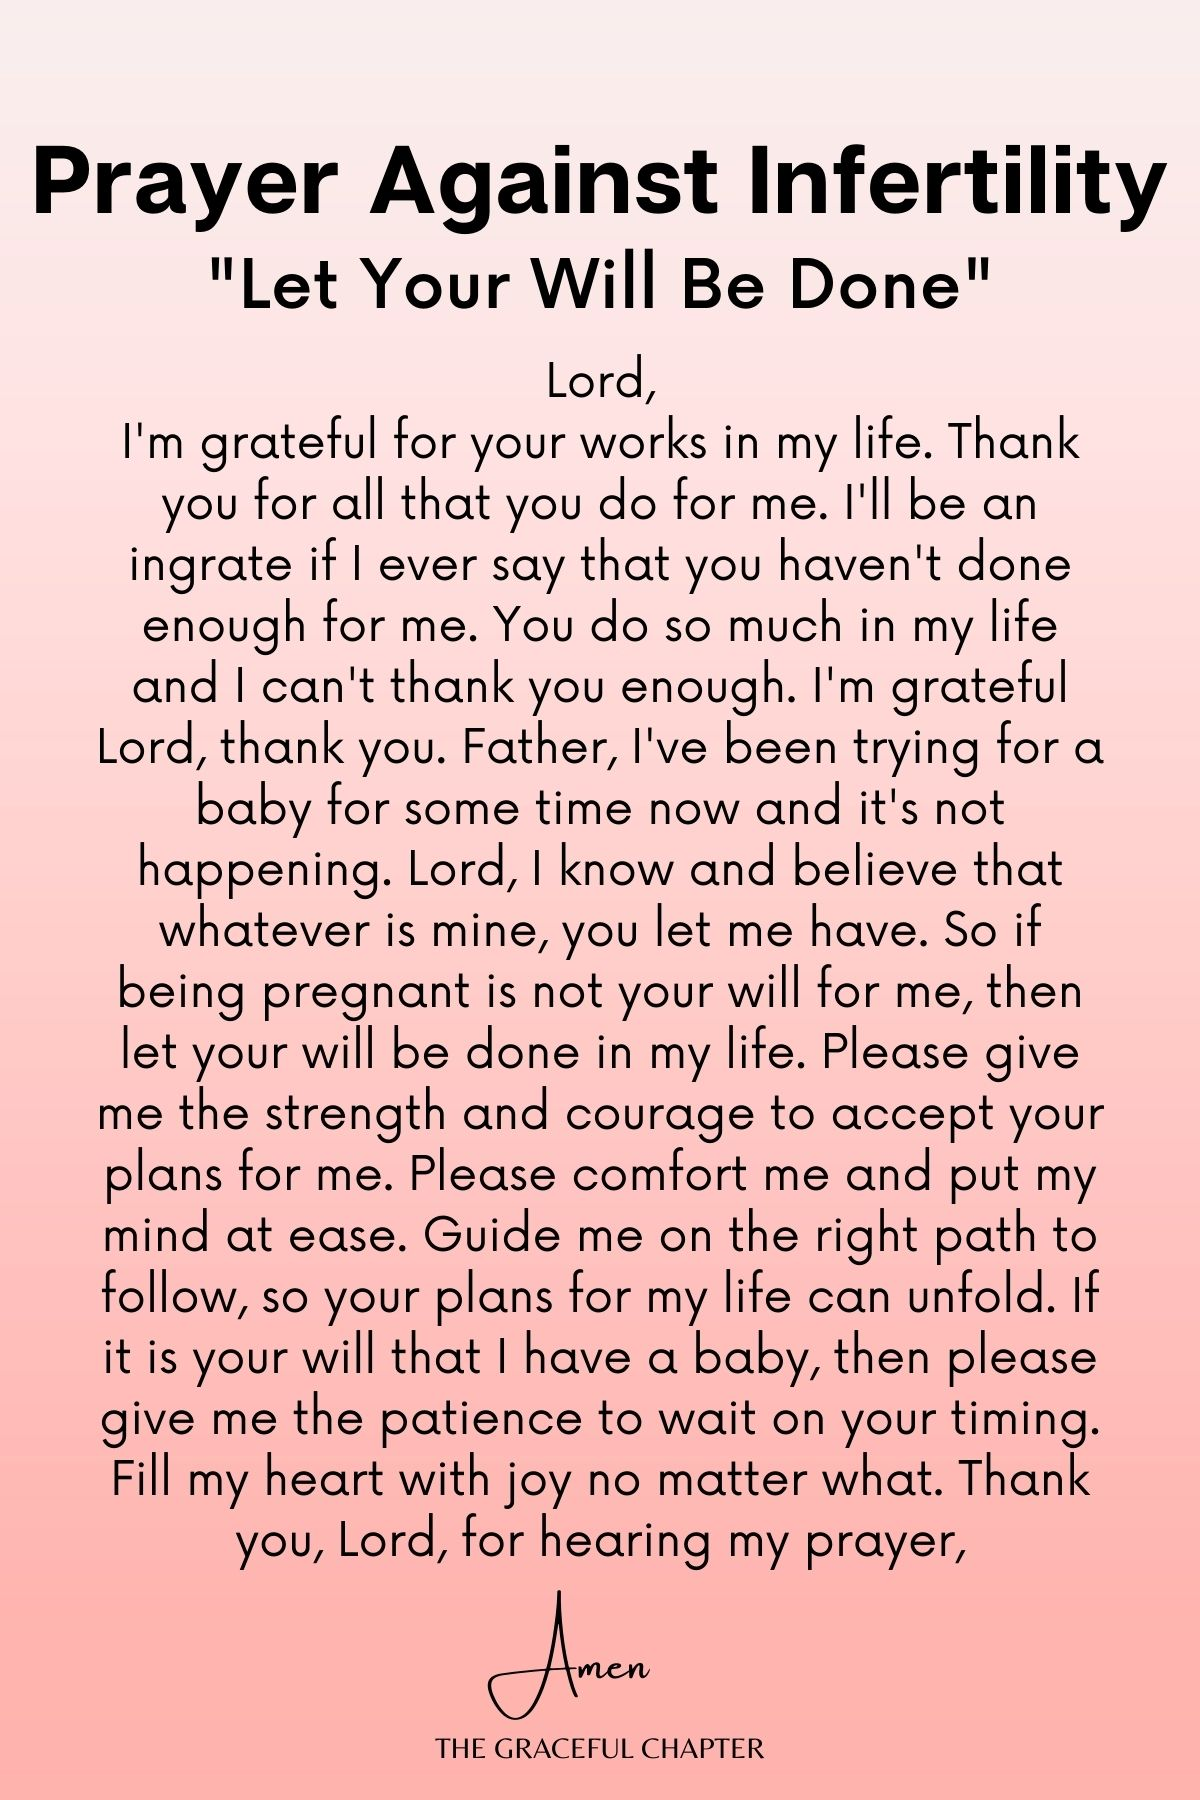 Prayer against infertility - Let your will be done